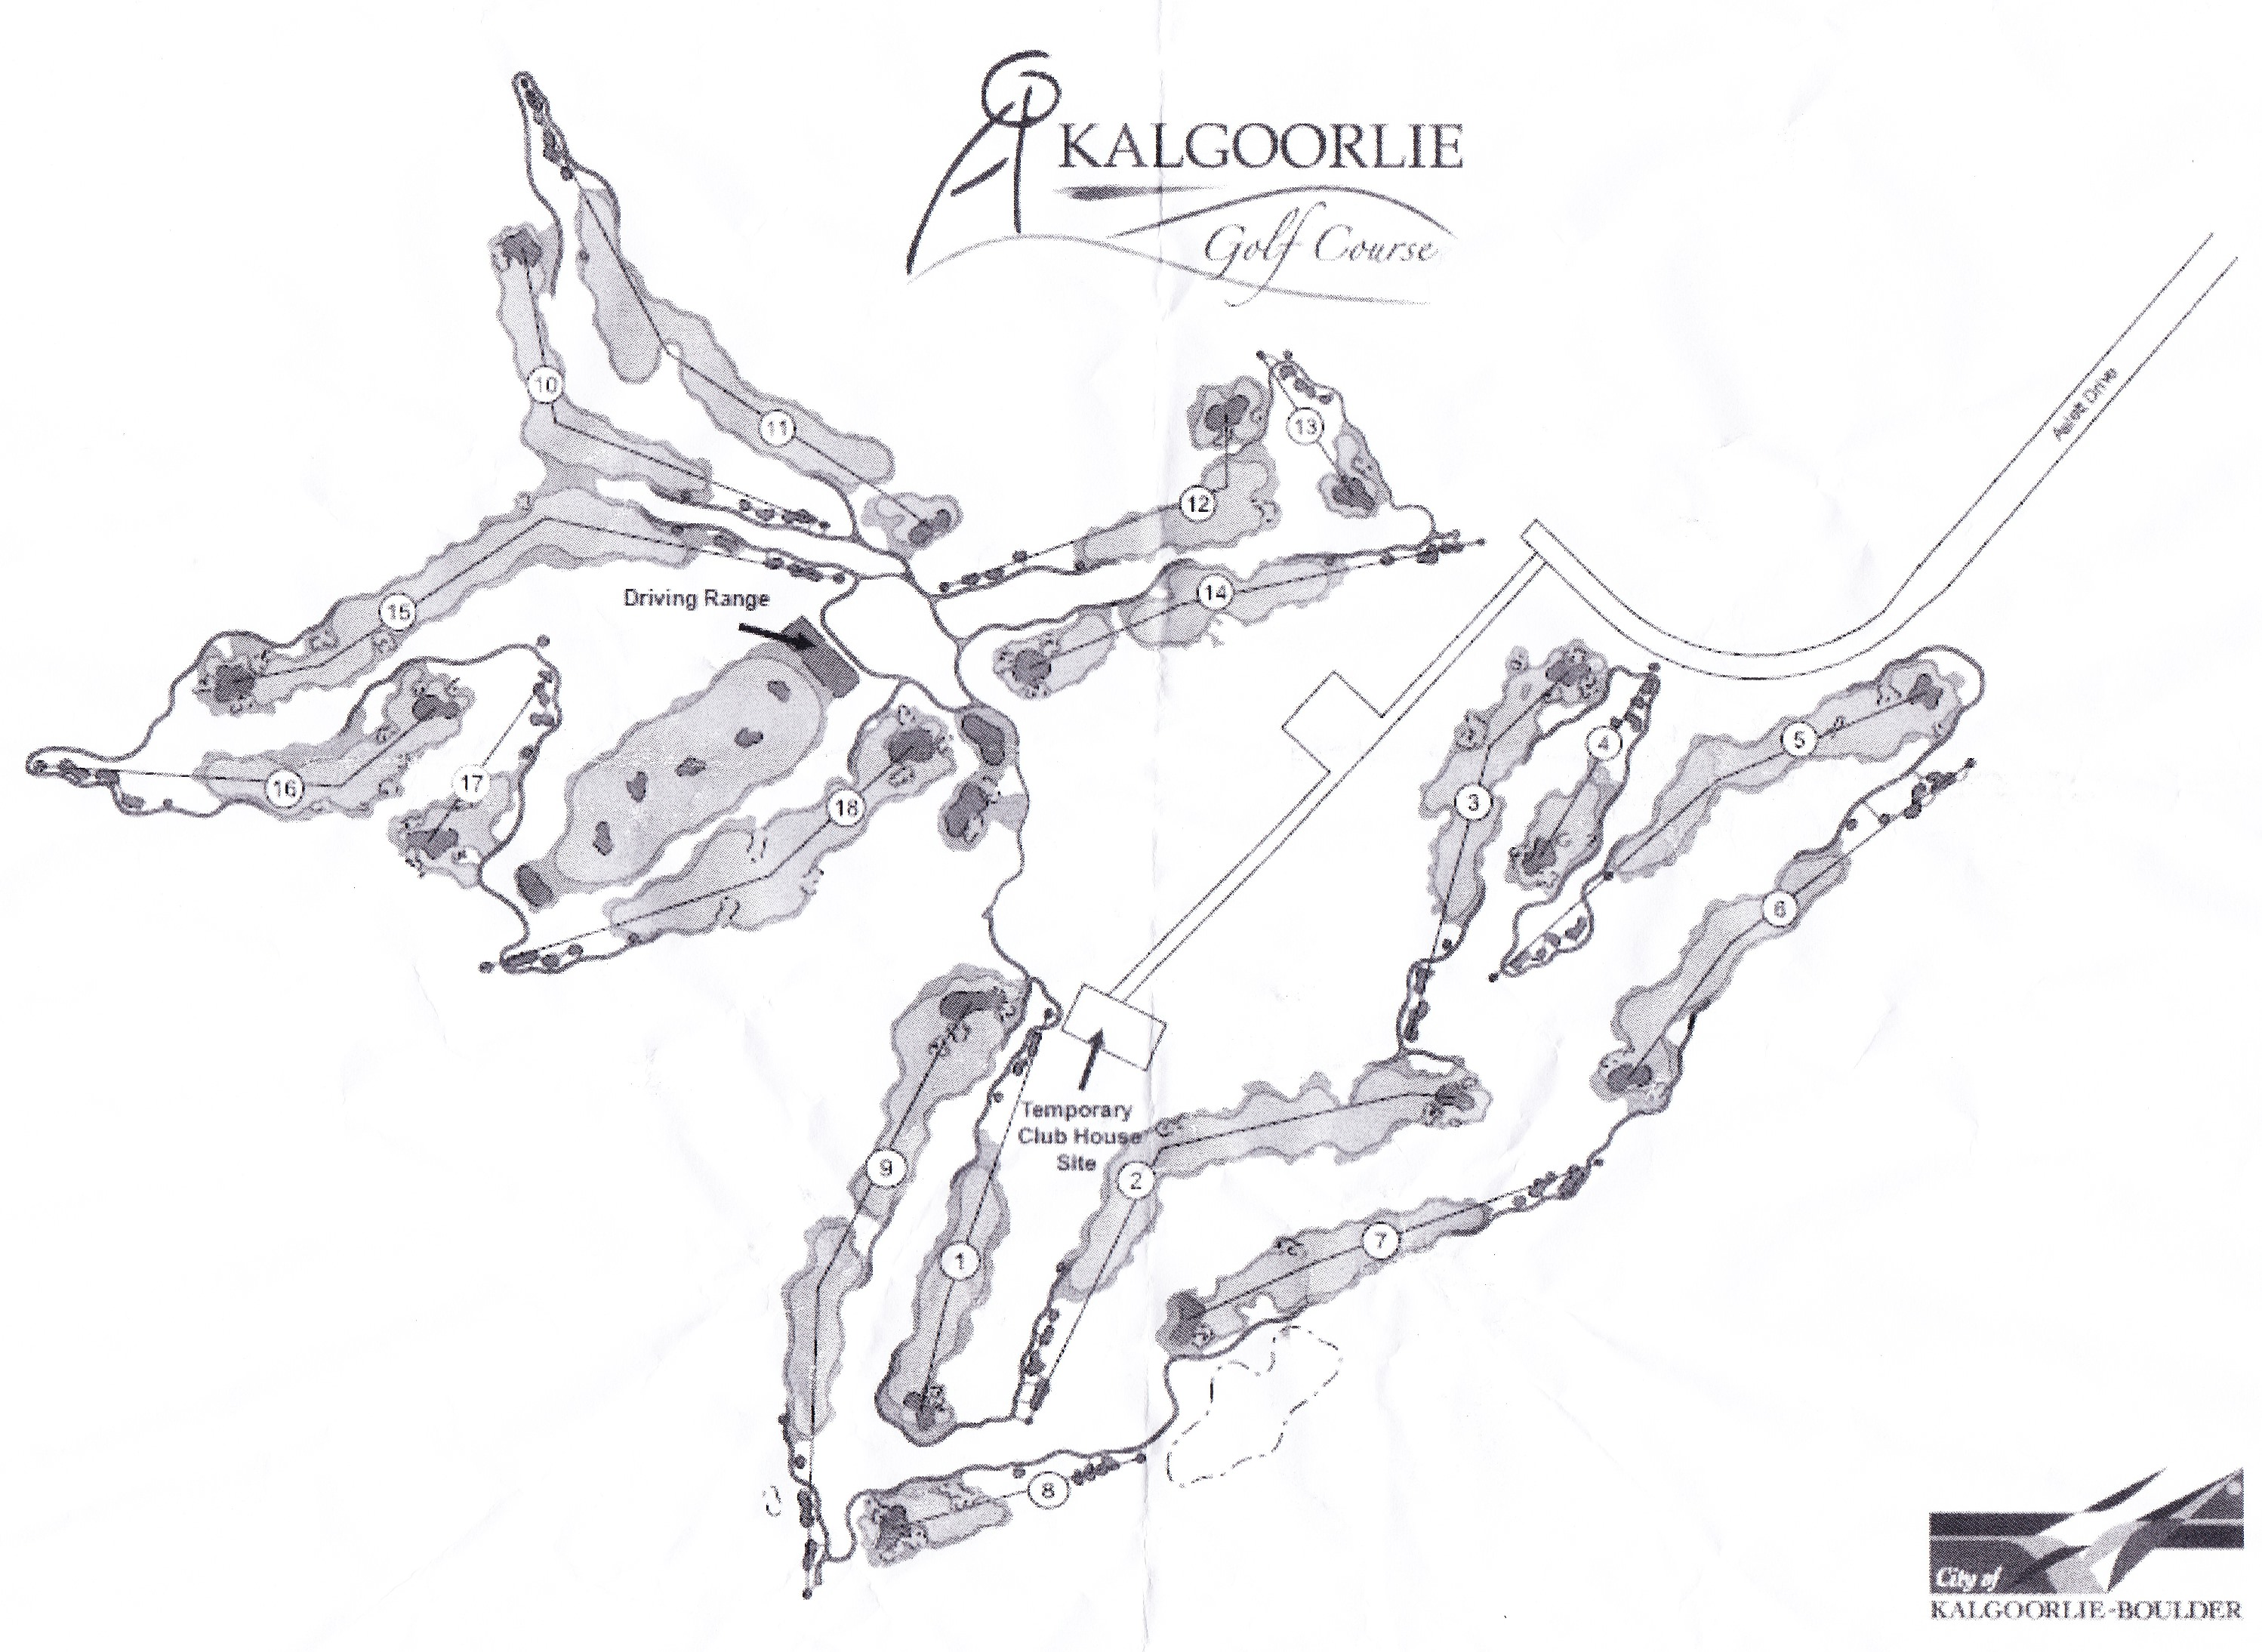 Kalgoorlie Golf Club Map Aussie Golf QuestAussie Golf Quest